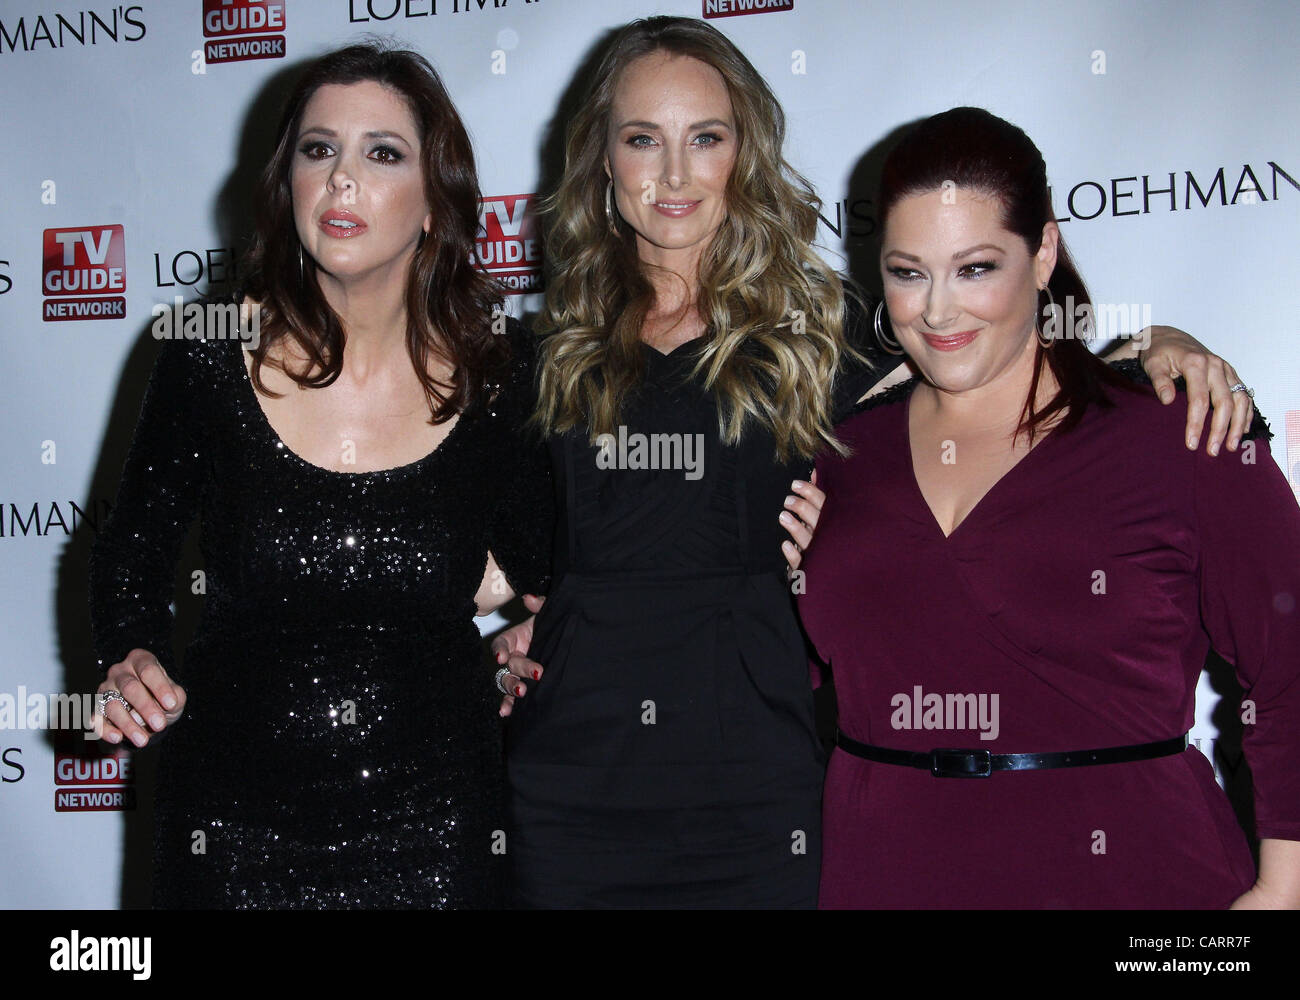 April 15, 2012 - Hollywood, California, U.S. - WENDY WILSON, CHYNNA PHILLIPS and CARNIE WILSON (L-R) at the launch - Stock Image